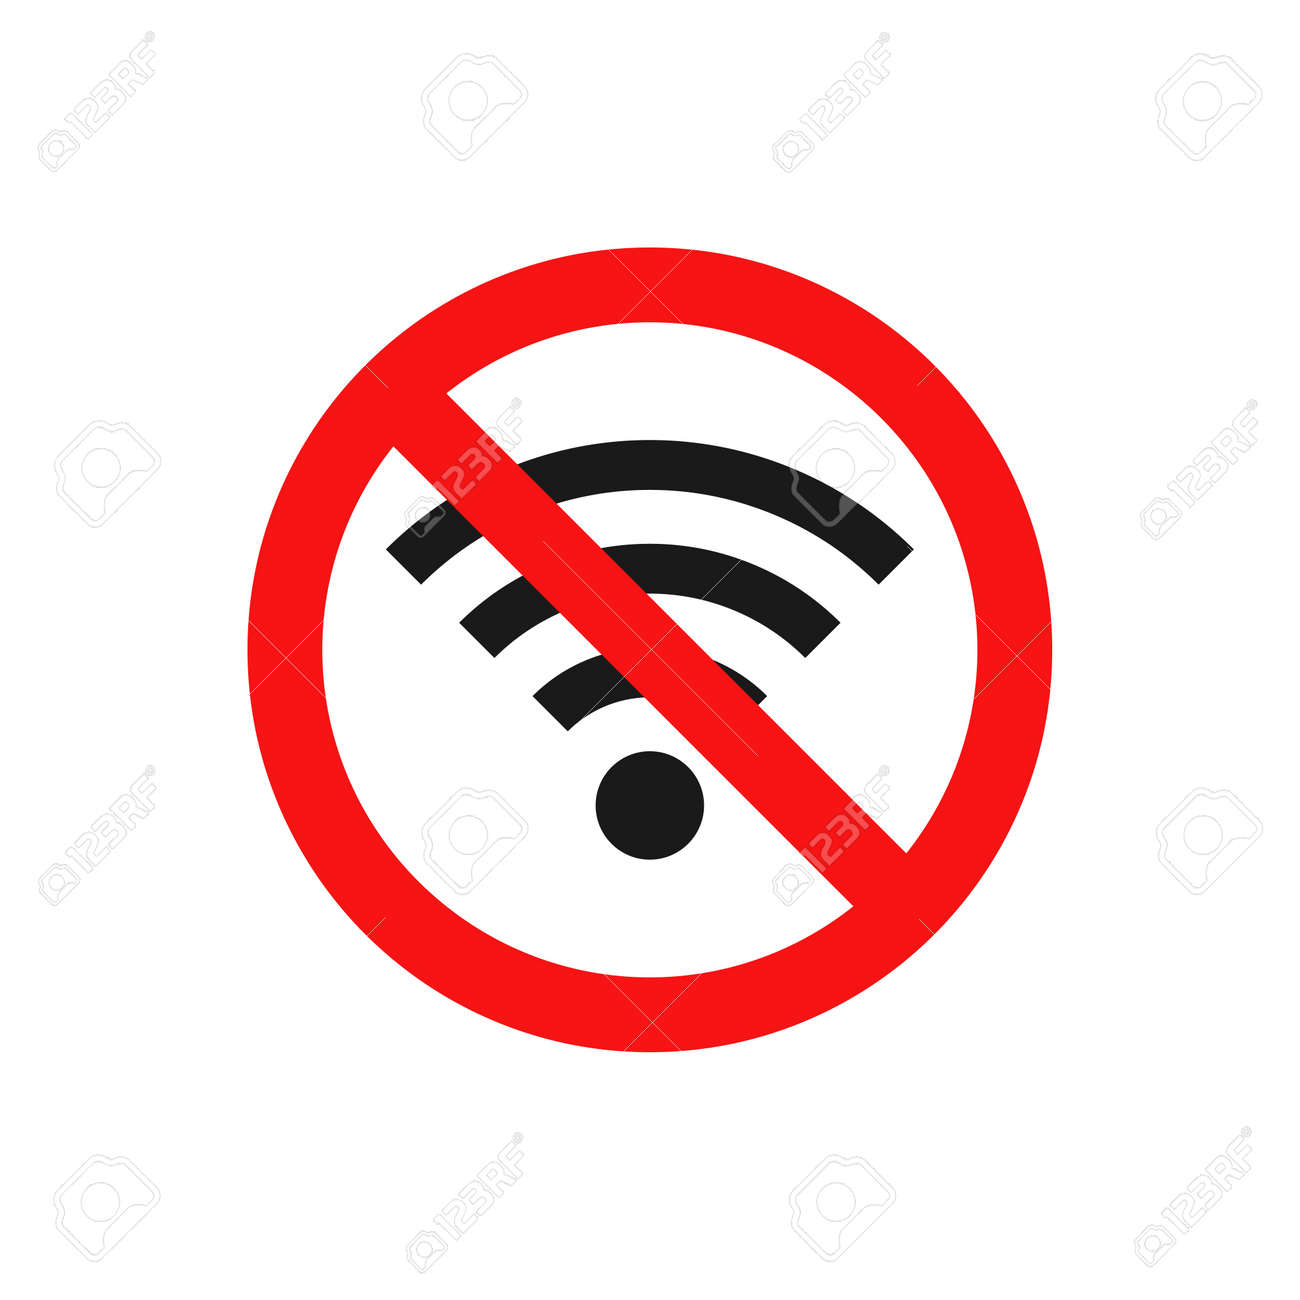 No wifi icon. Red ban circle sign. Prohibition wireless network pictogram. No internet concept. Wireless technology symbol. Vector isolated on white background - 166552619